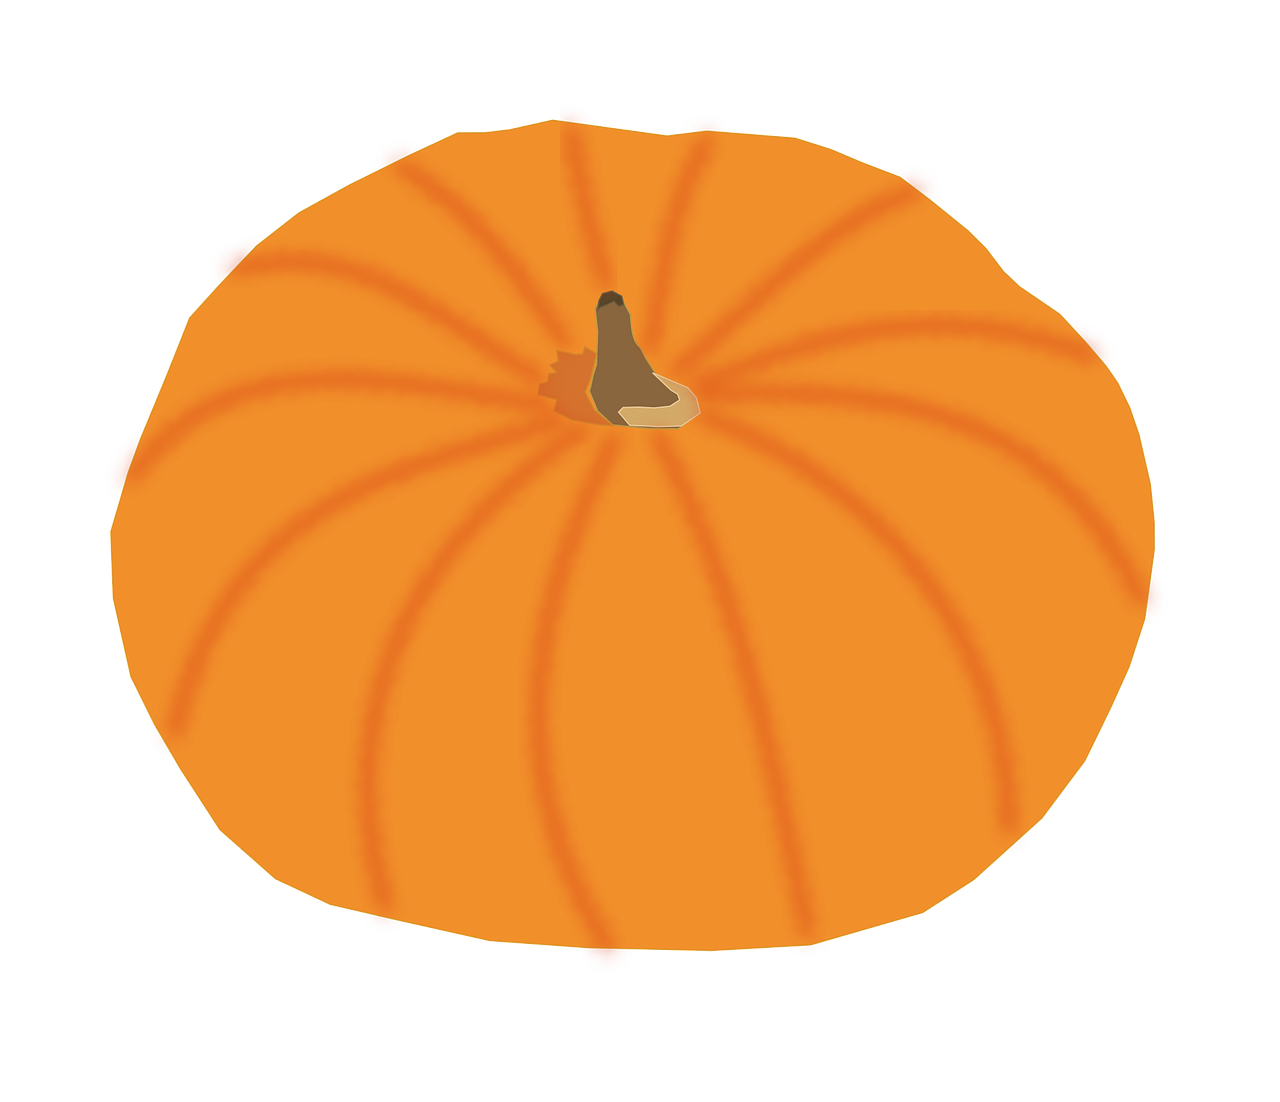 pumpkin halloween thanksgiving free photo